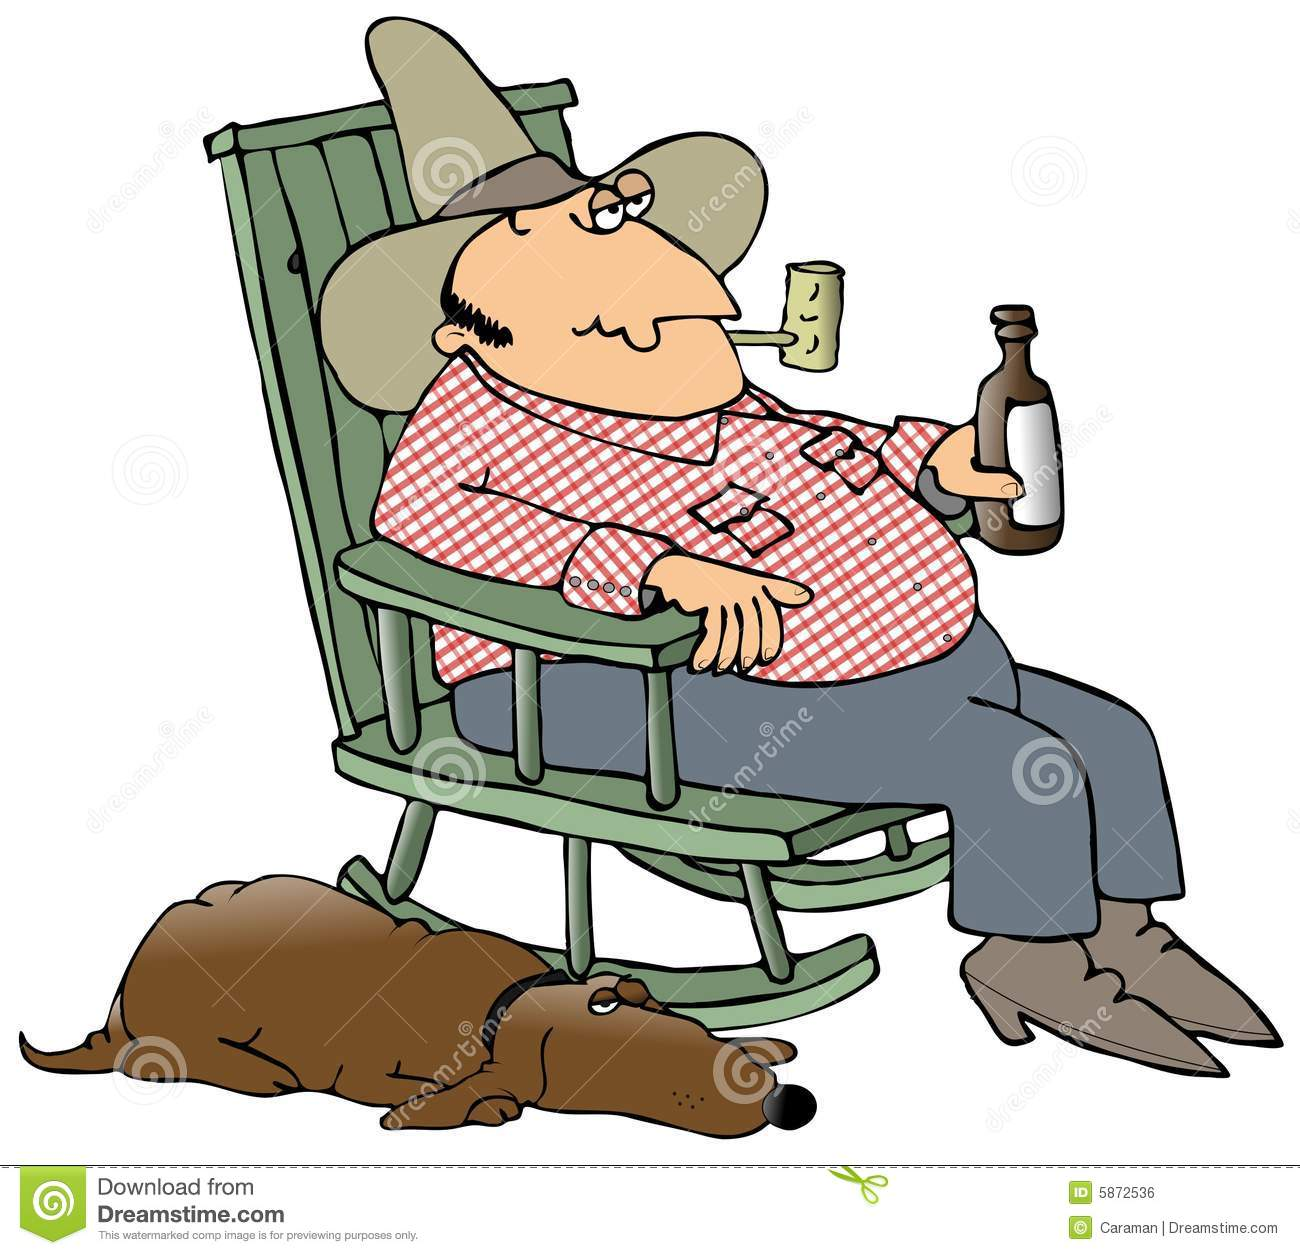 hight resolution of hillbilly and his dog this illustration depicts a hillbilly sitting in a rocking chair drinking